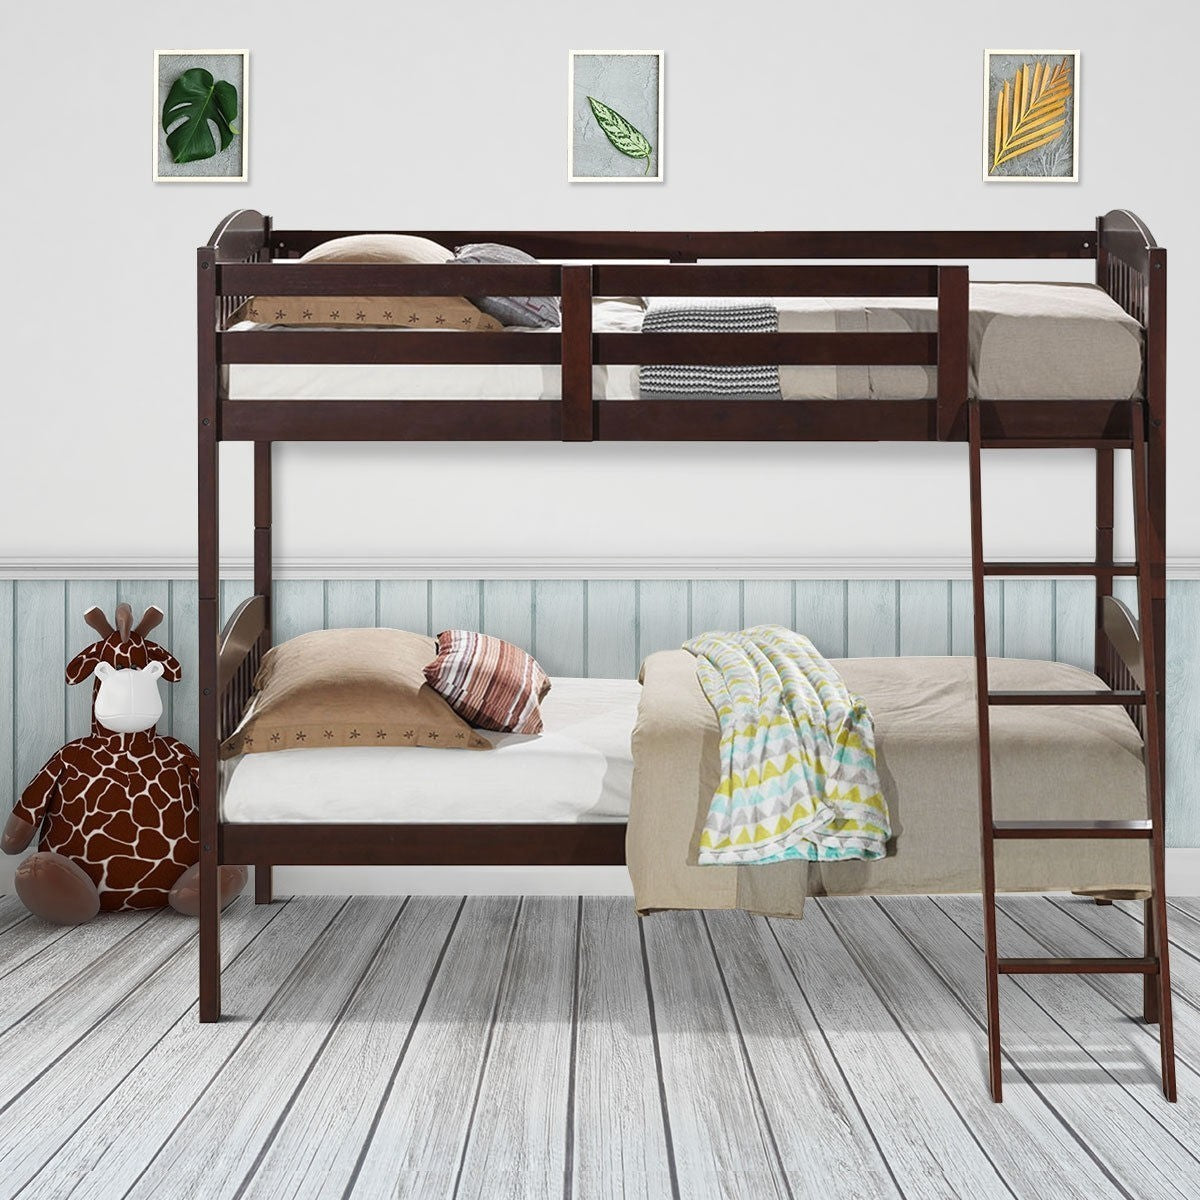 Solid Wood Twin Bunk Beds With Detachable Kids Ladder Hw58907 Wc